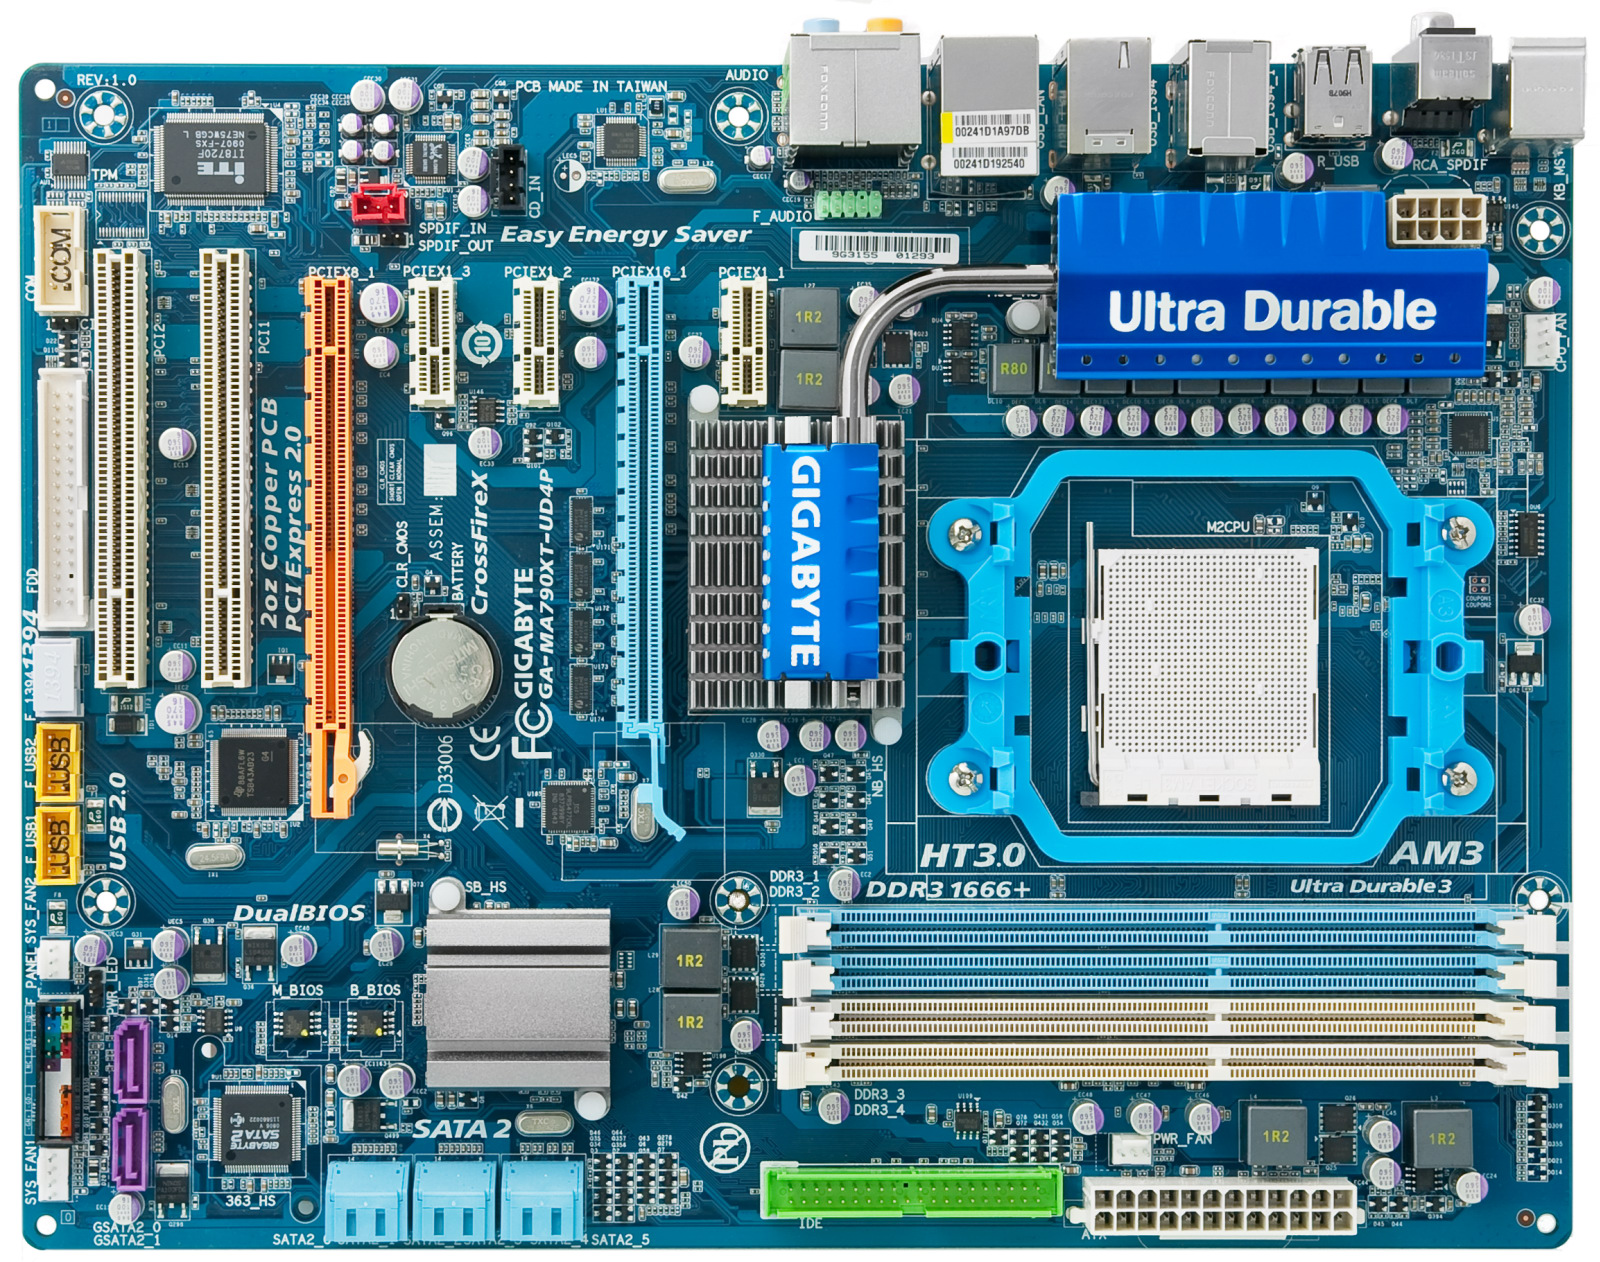 Motherboard And Hardware Labelling